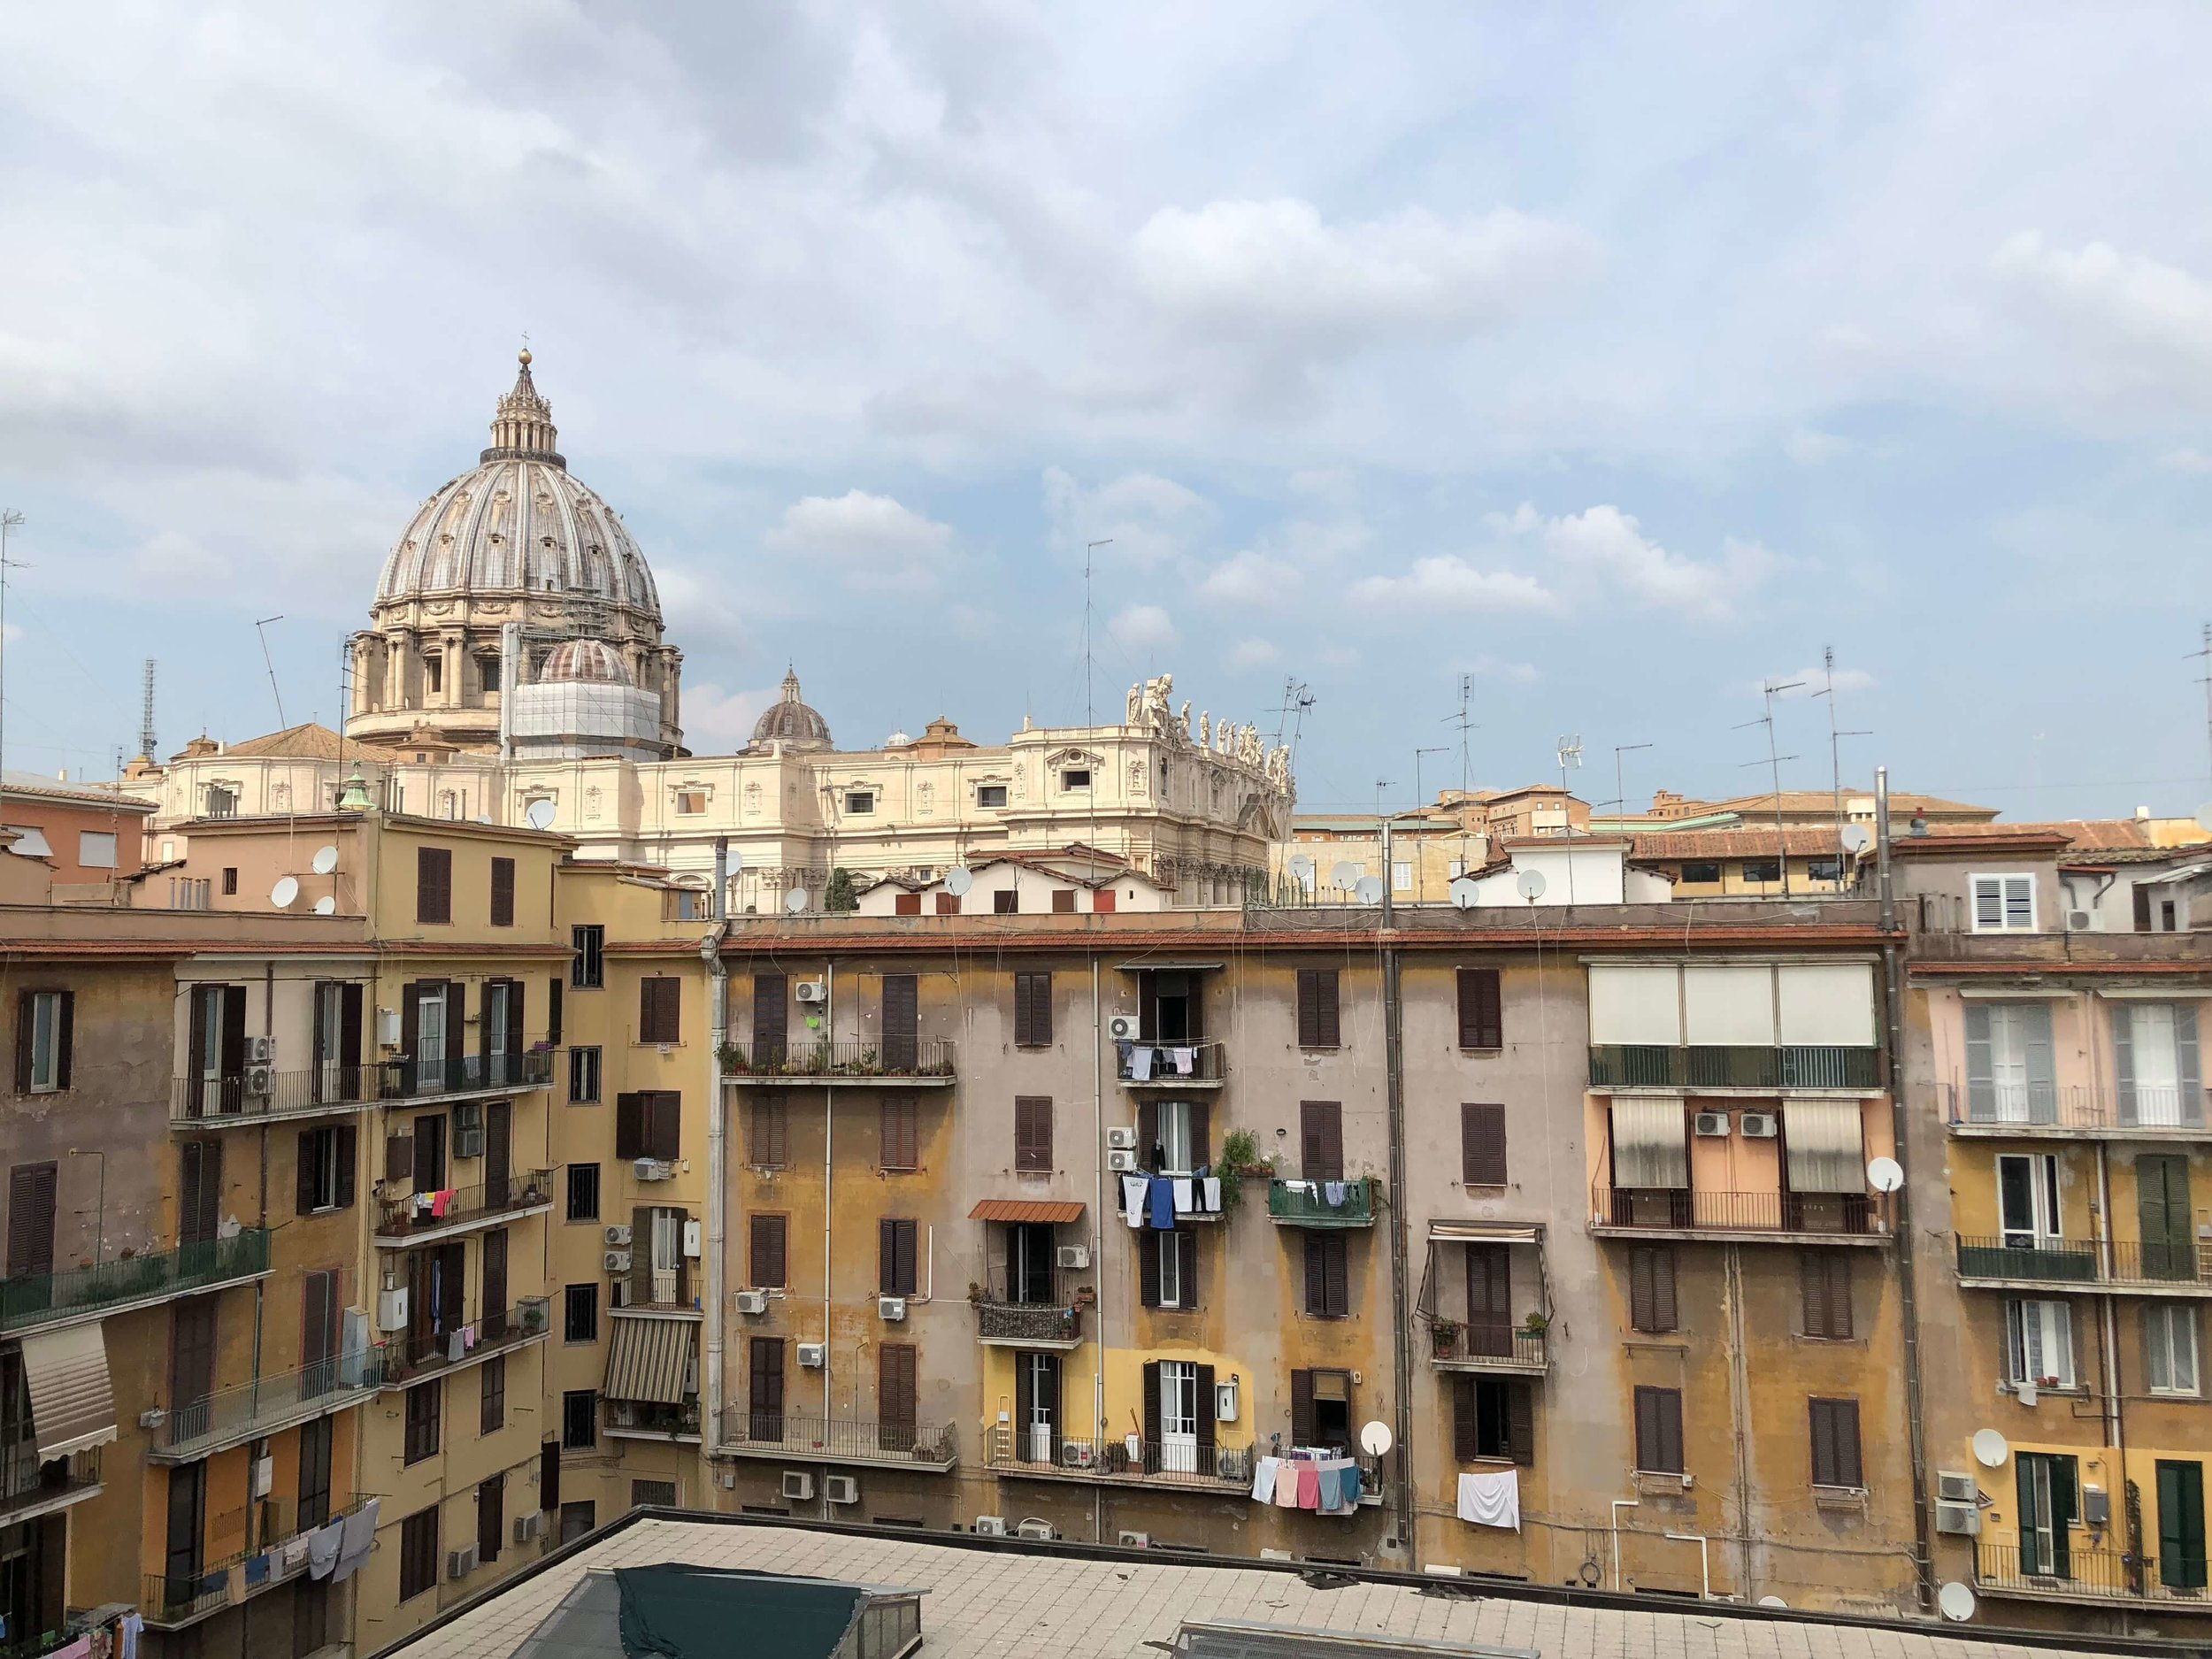 A view of San Pierto's Basilica from a near by neighborhood in Rome.